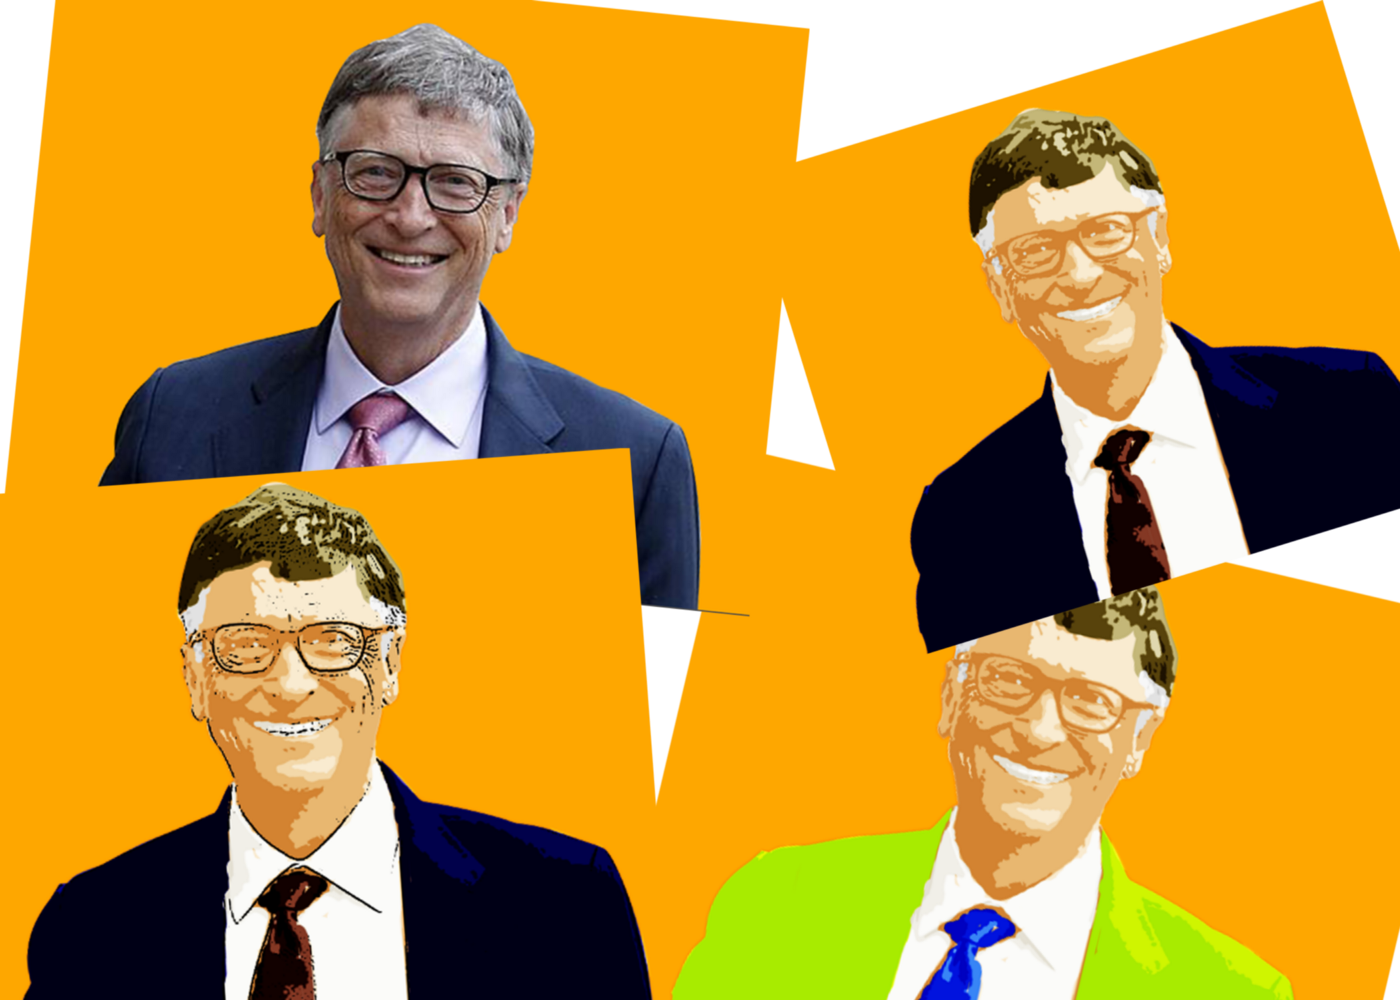 different cartoon images of bill gates